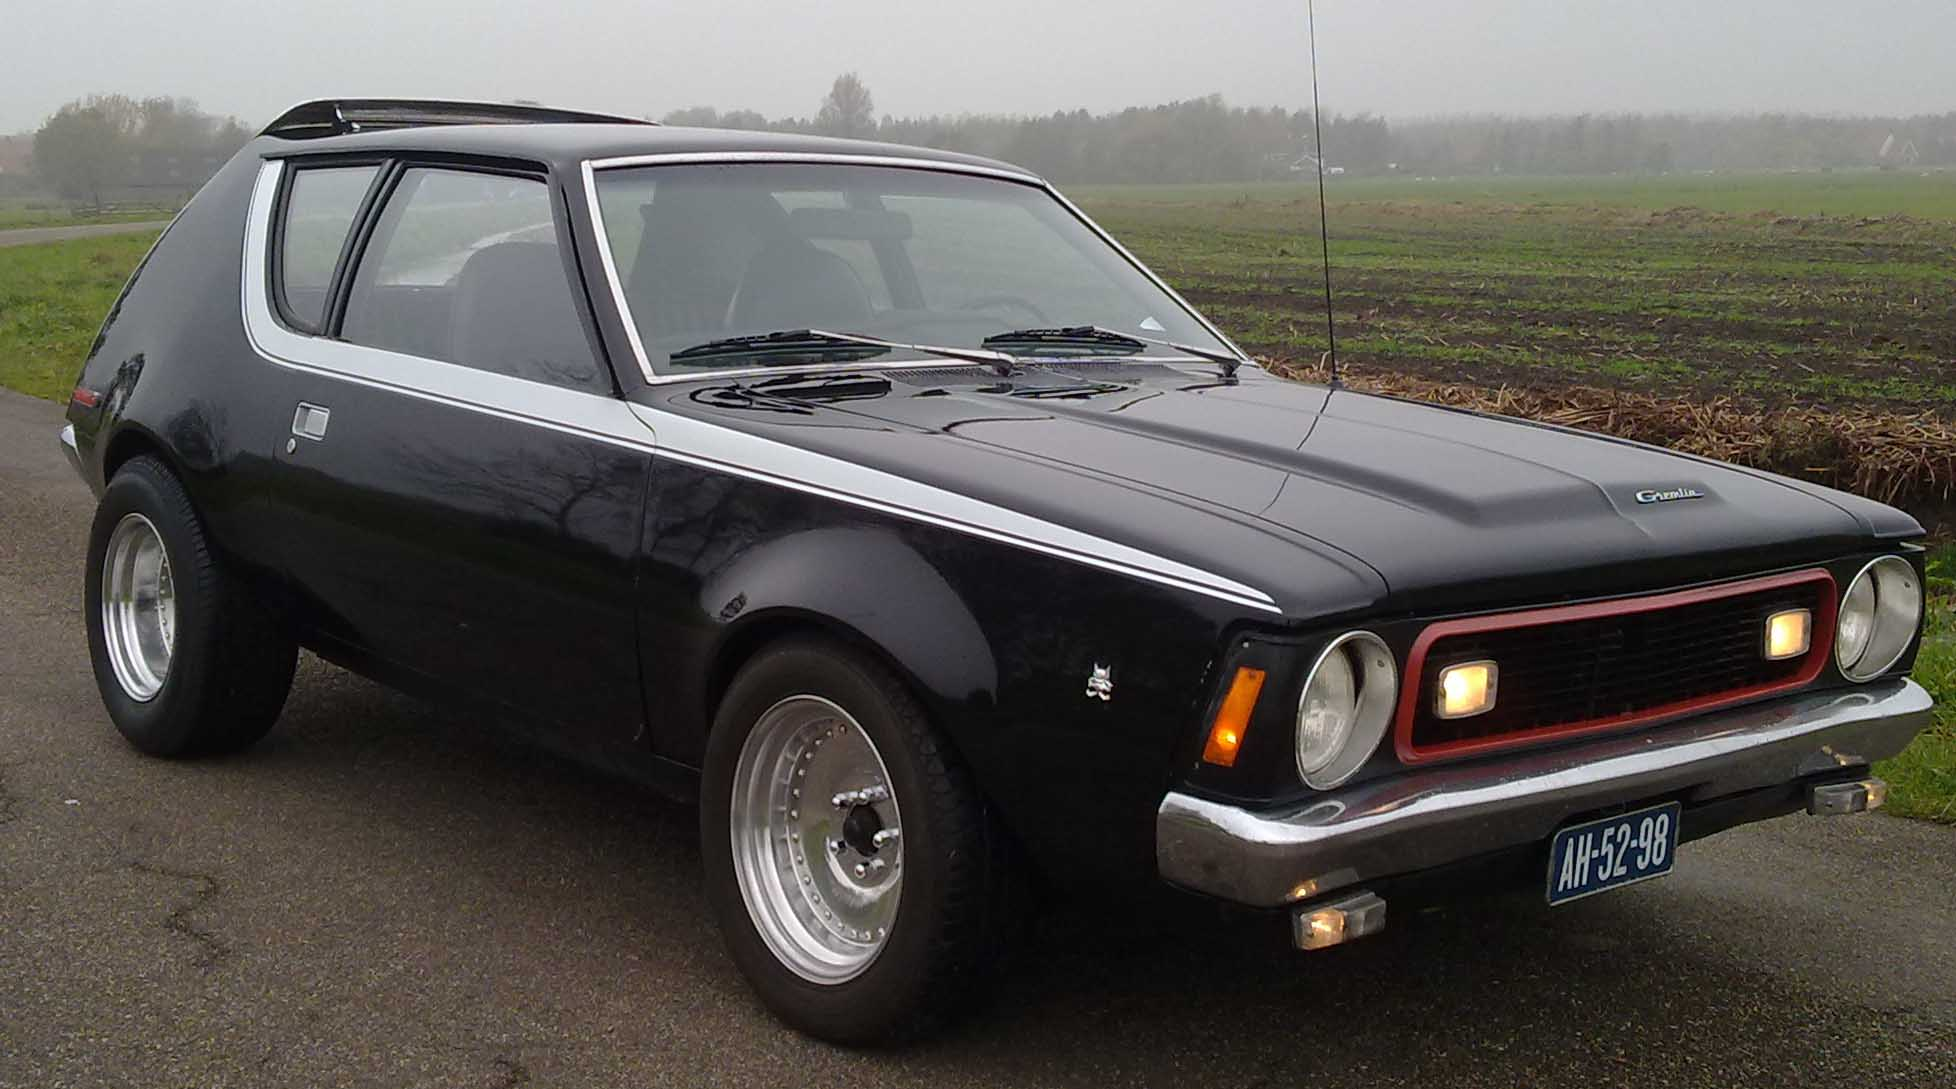 4.0 HO in a Gremlin - The AMC Forum - Page 1